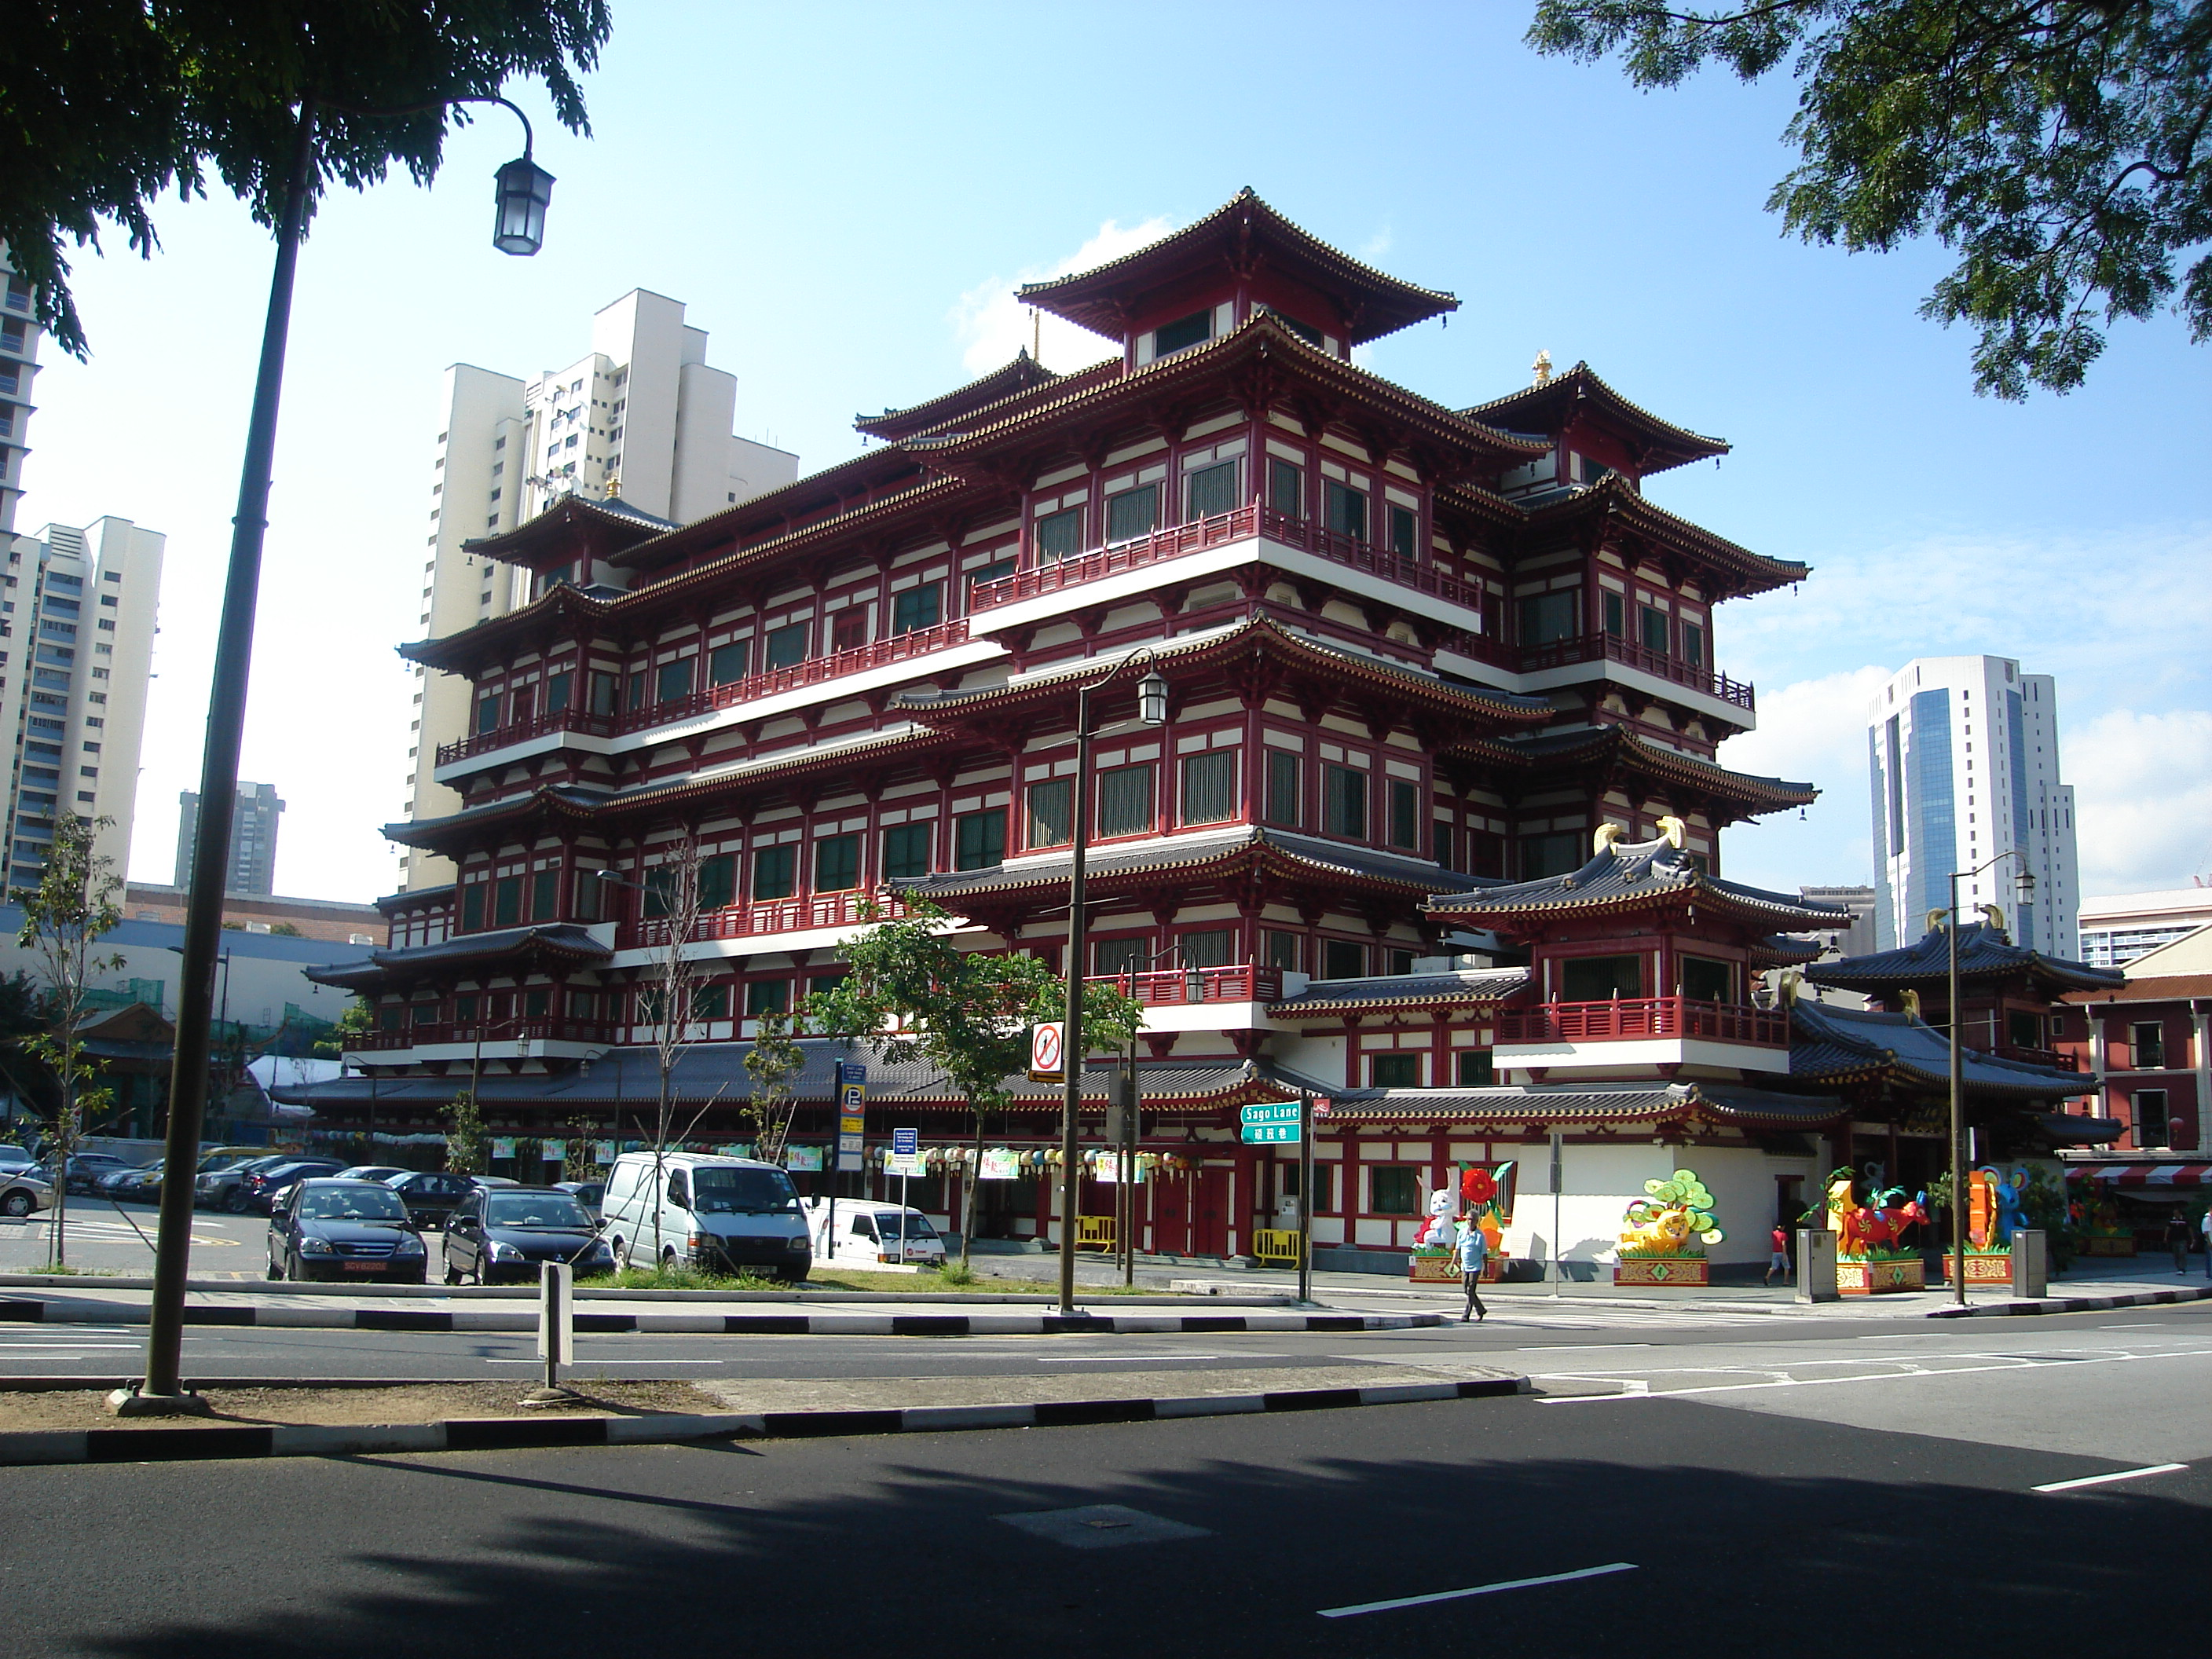 Buddha Tooth Relic Temple Singapore Check Out Buddha Tooth Relic Temple Singapore Cntravel